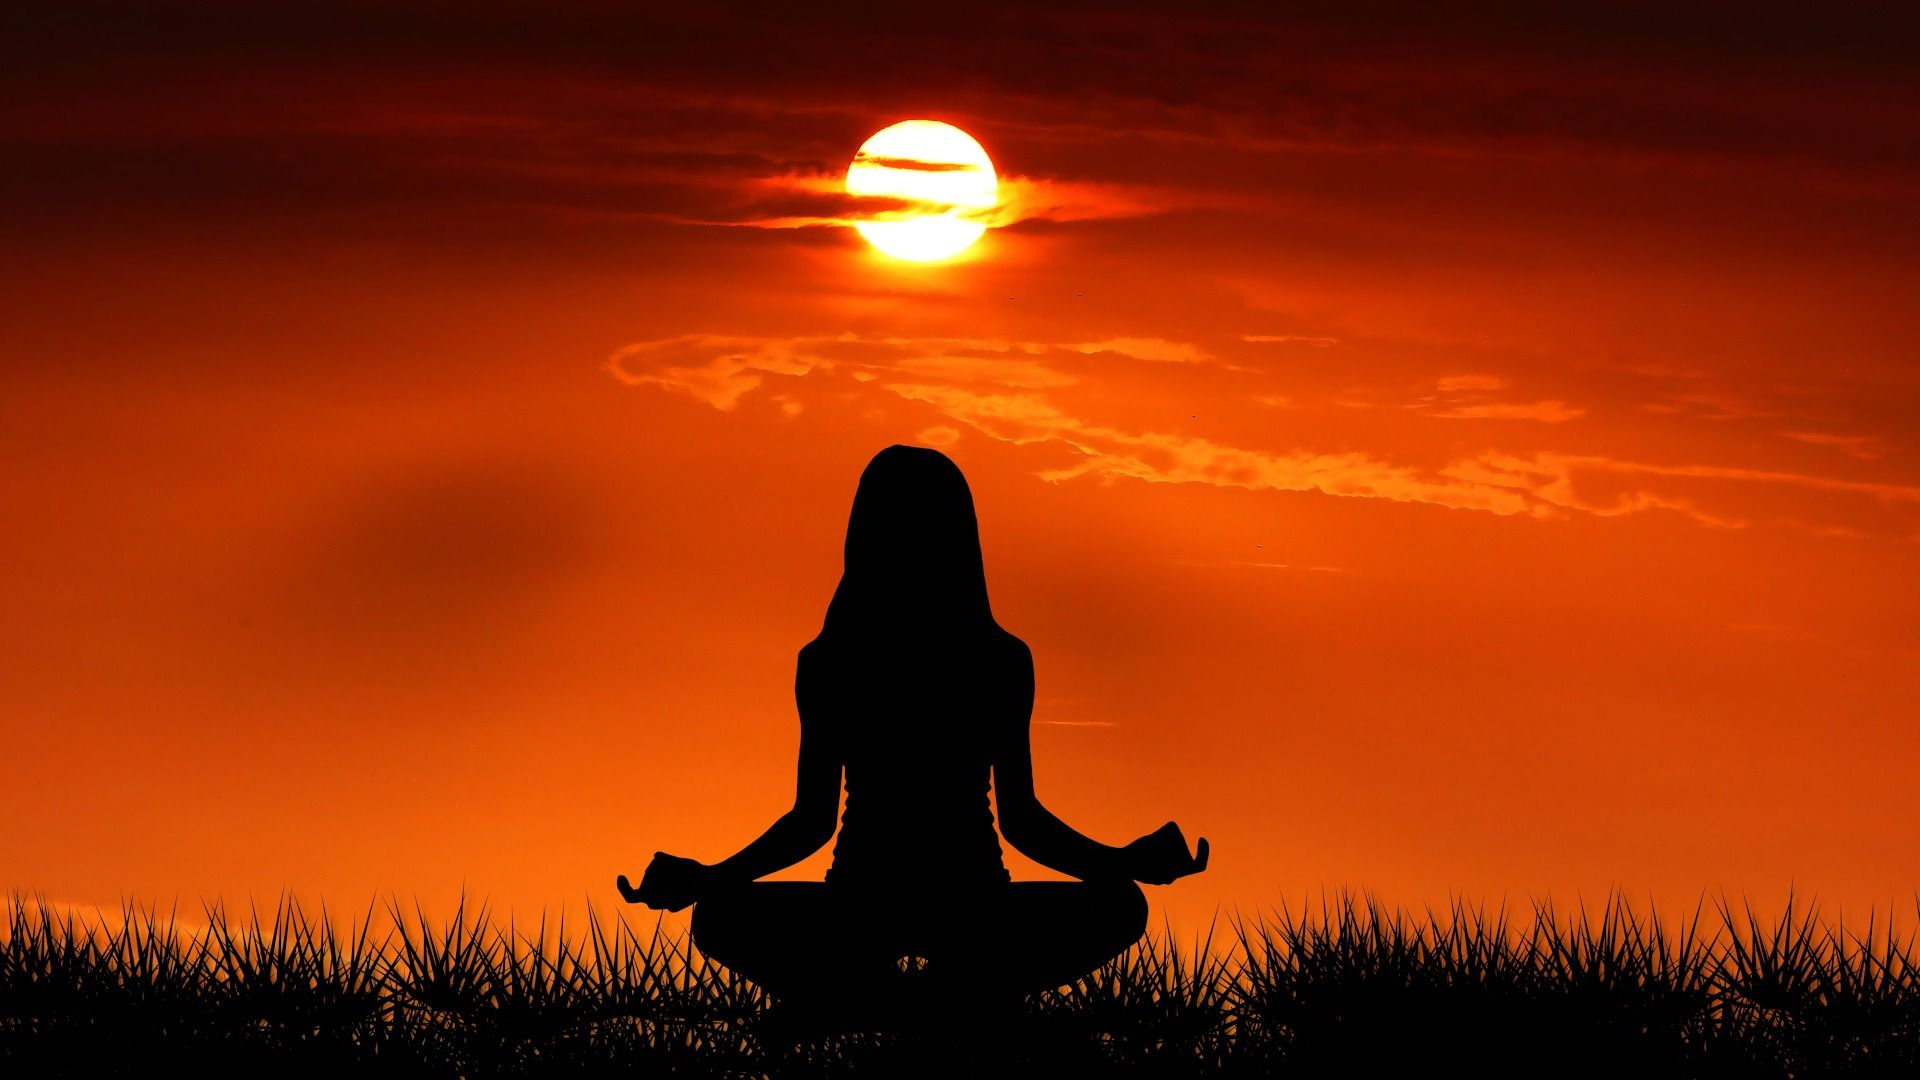 Meditation download free wallpaper image search